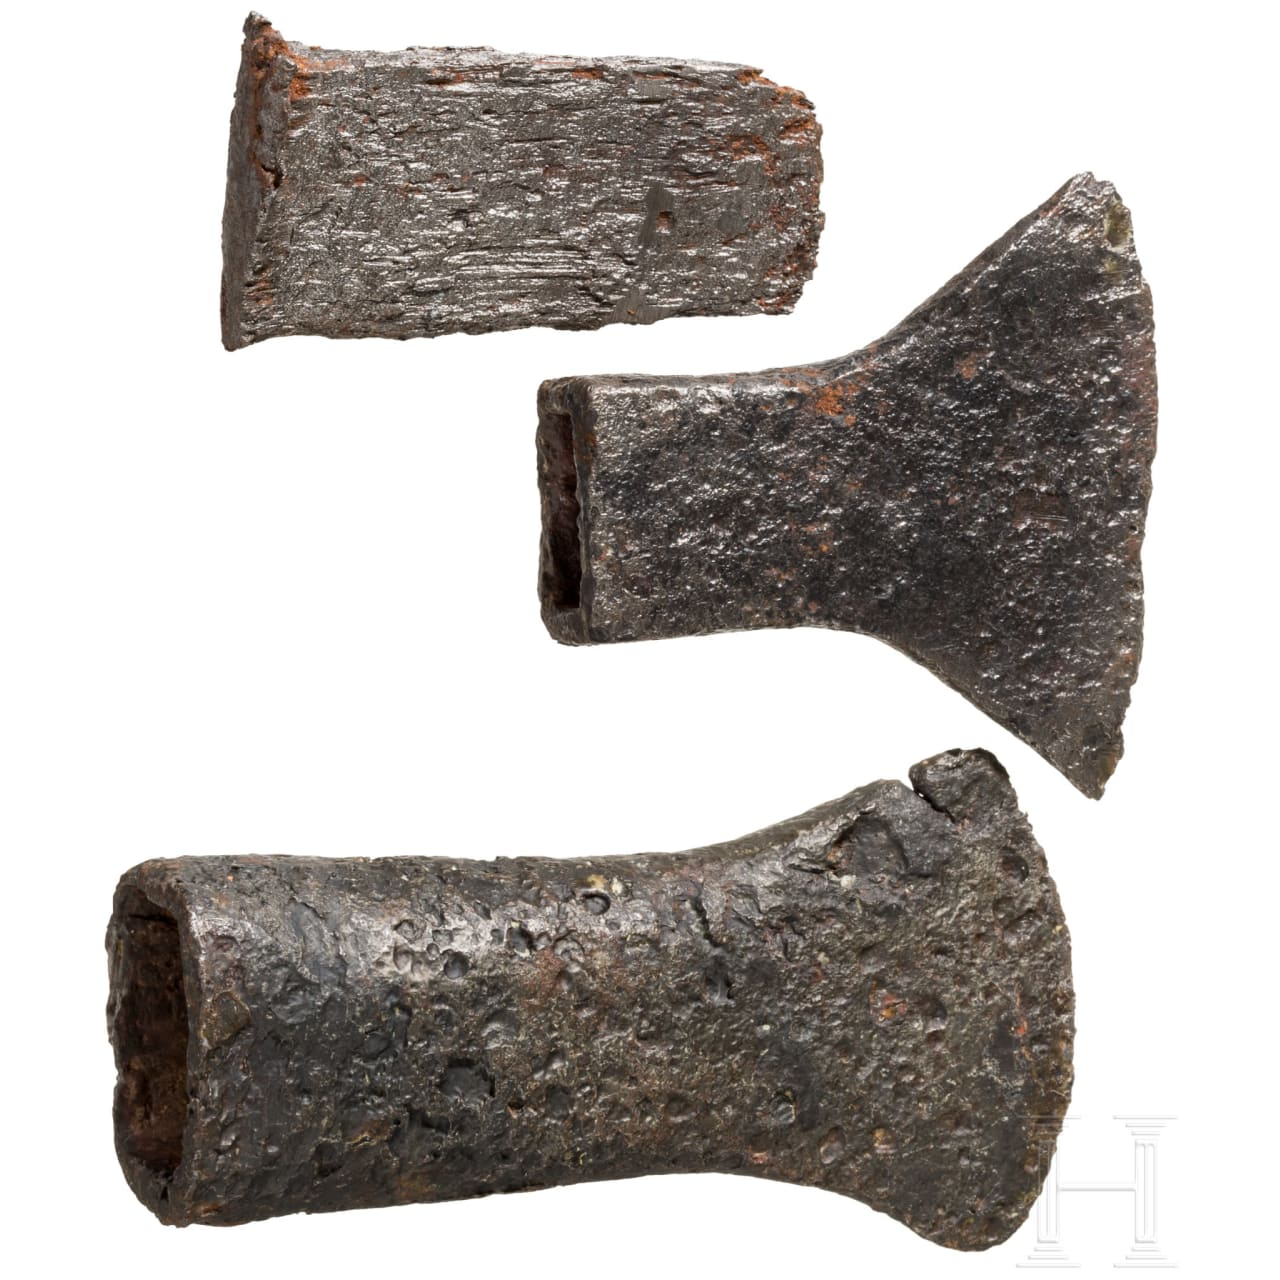 Three Celtic iron tools, 3rd – 1st century B.C.